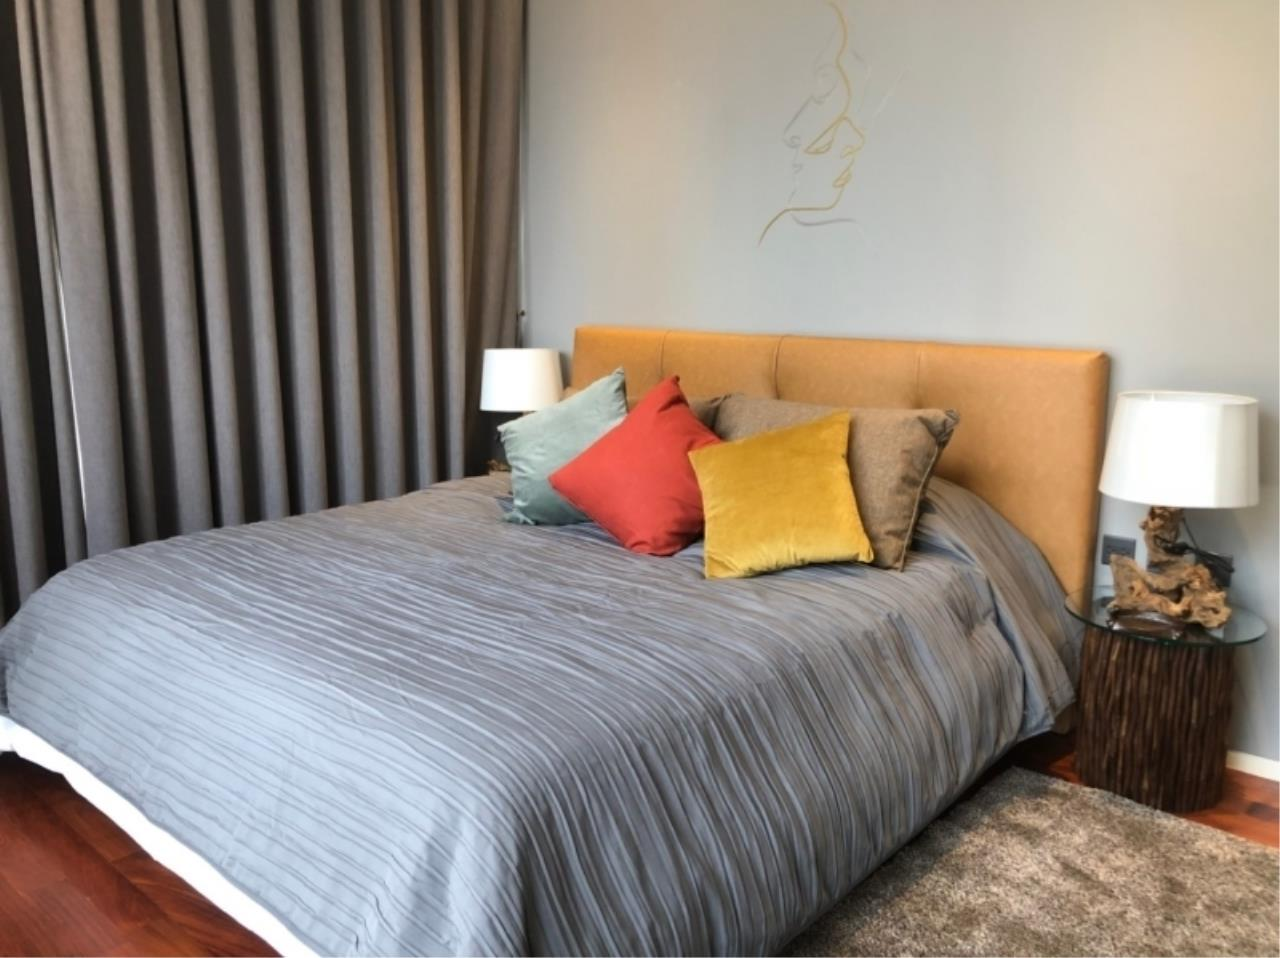 Century21 Skylux Agency's 33 Serviced Apartment / Apartment (Serviced) For Rent / 2 Bedroom / 120 SQM / BTS Asok / Bangkok 2